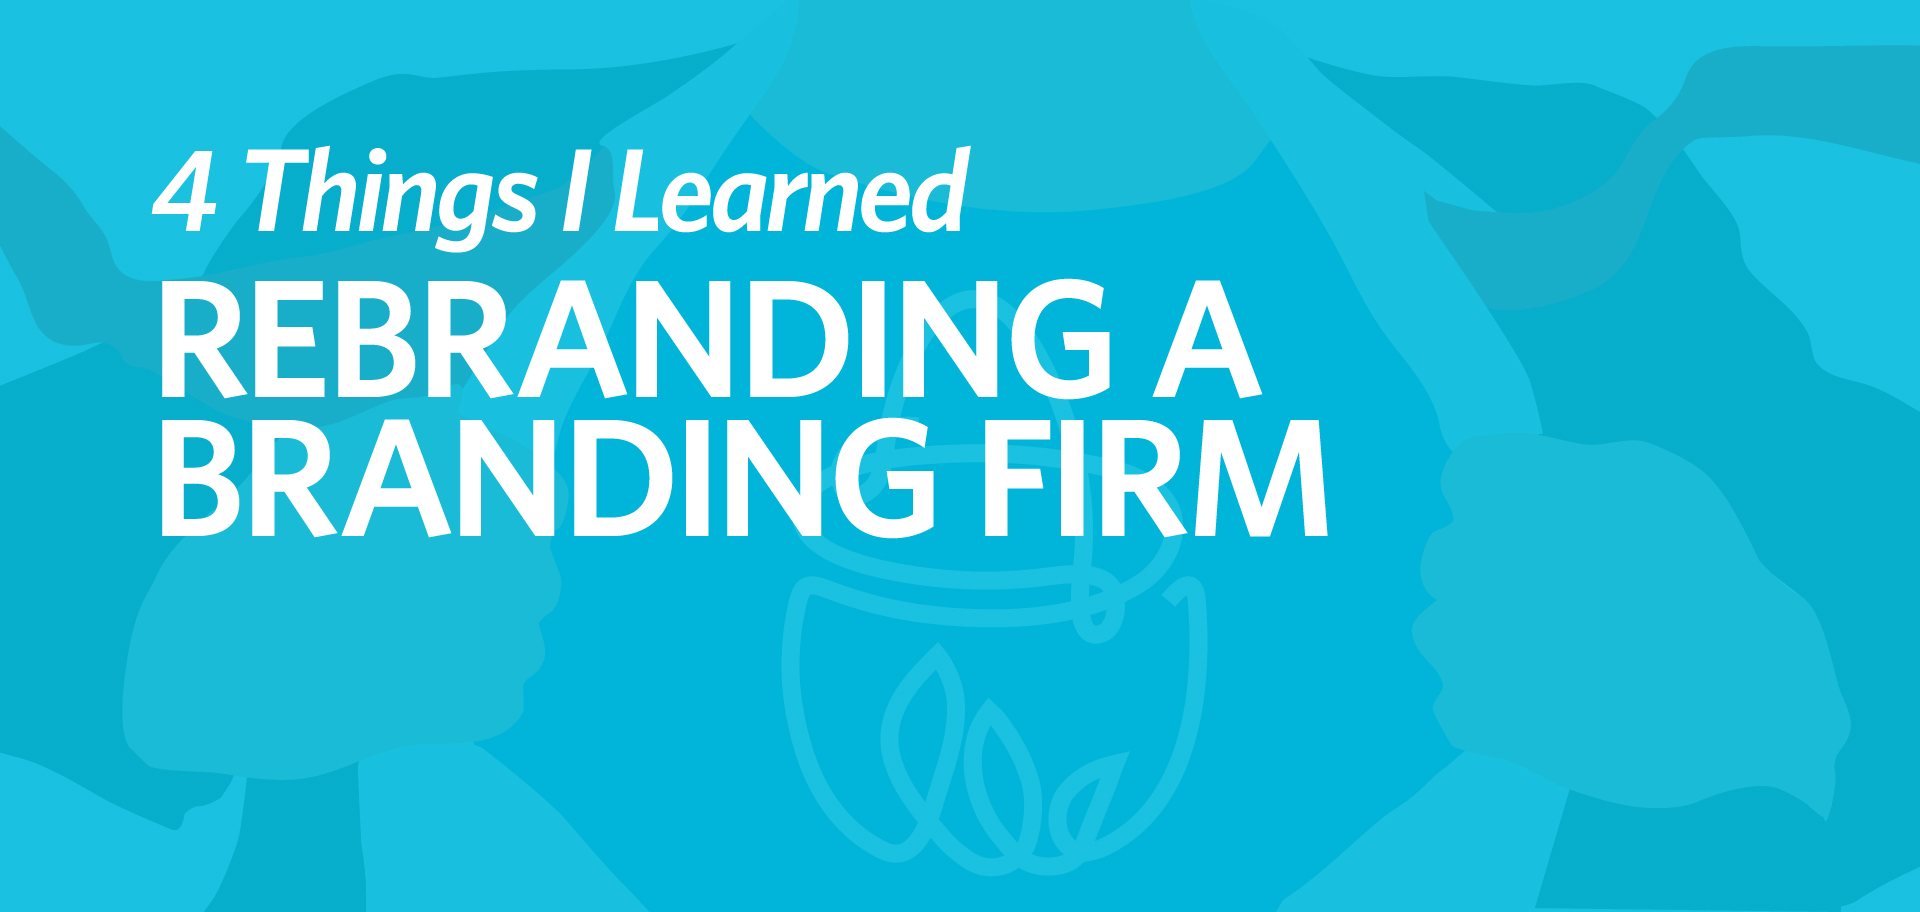 4 things I learned rebranding a branding firm Kettle Fire Creative guide to rebranding rebrand 4 Things I Learned Rebranding a Branding Firm rebranding a branding firm fi